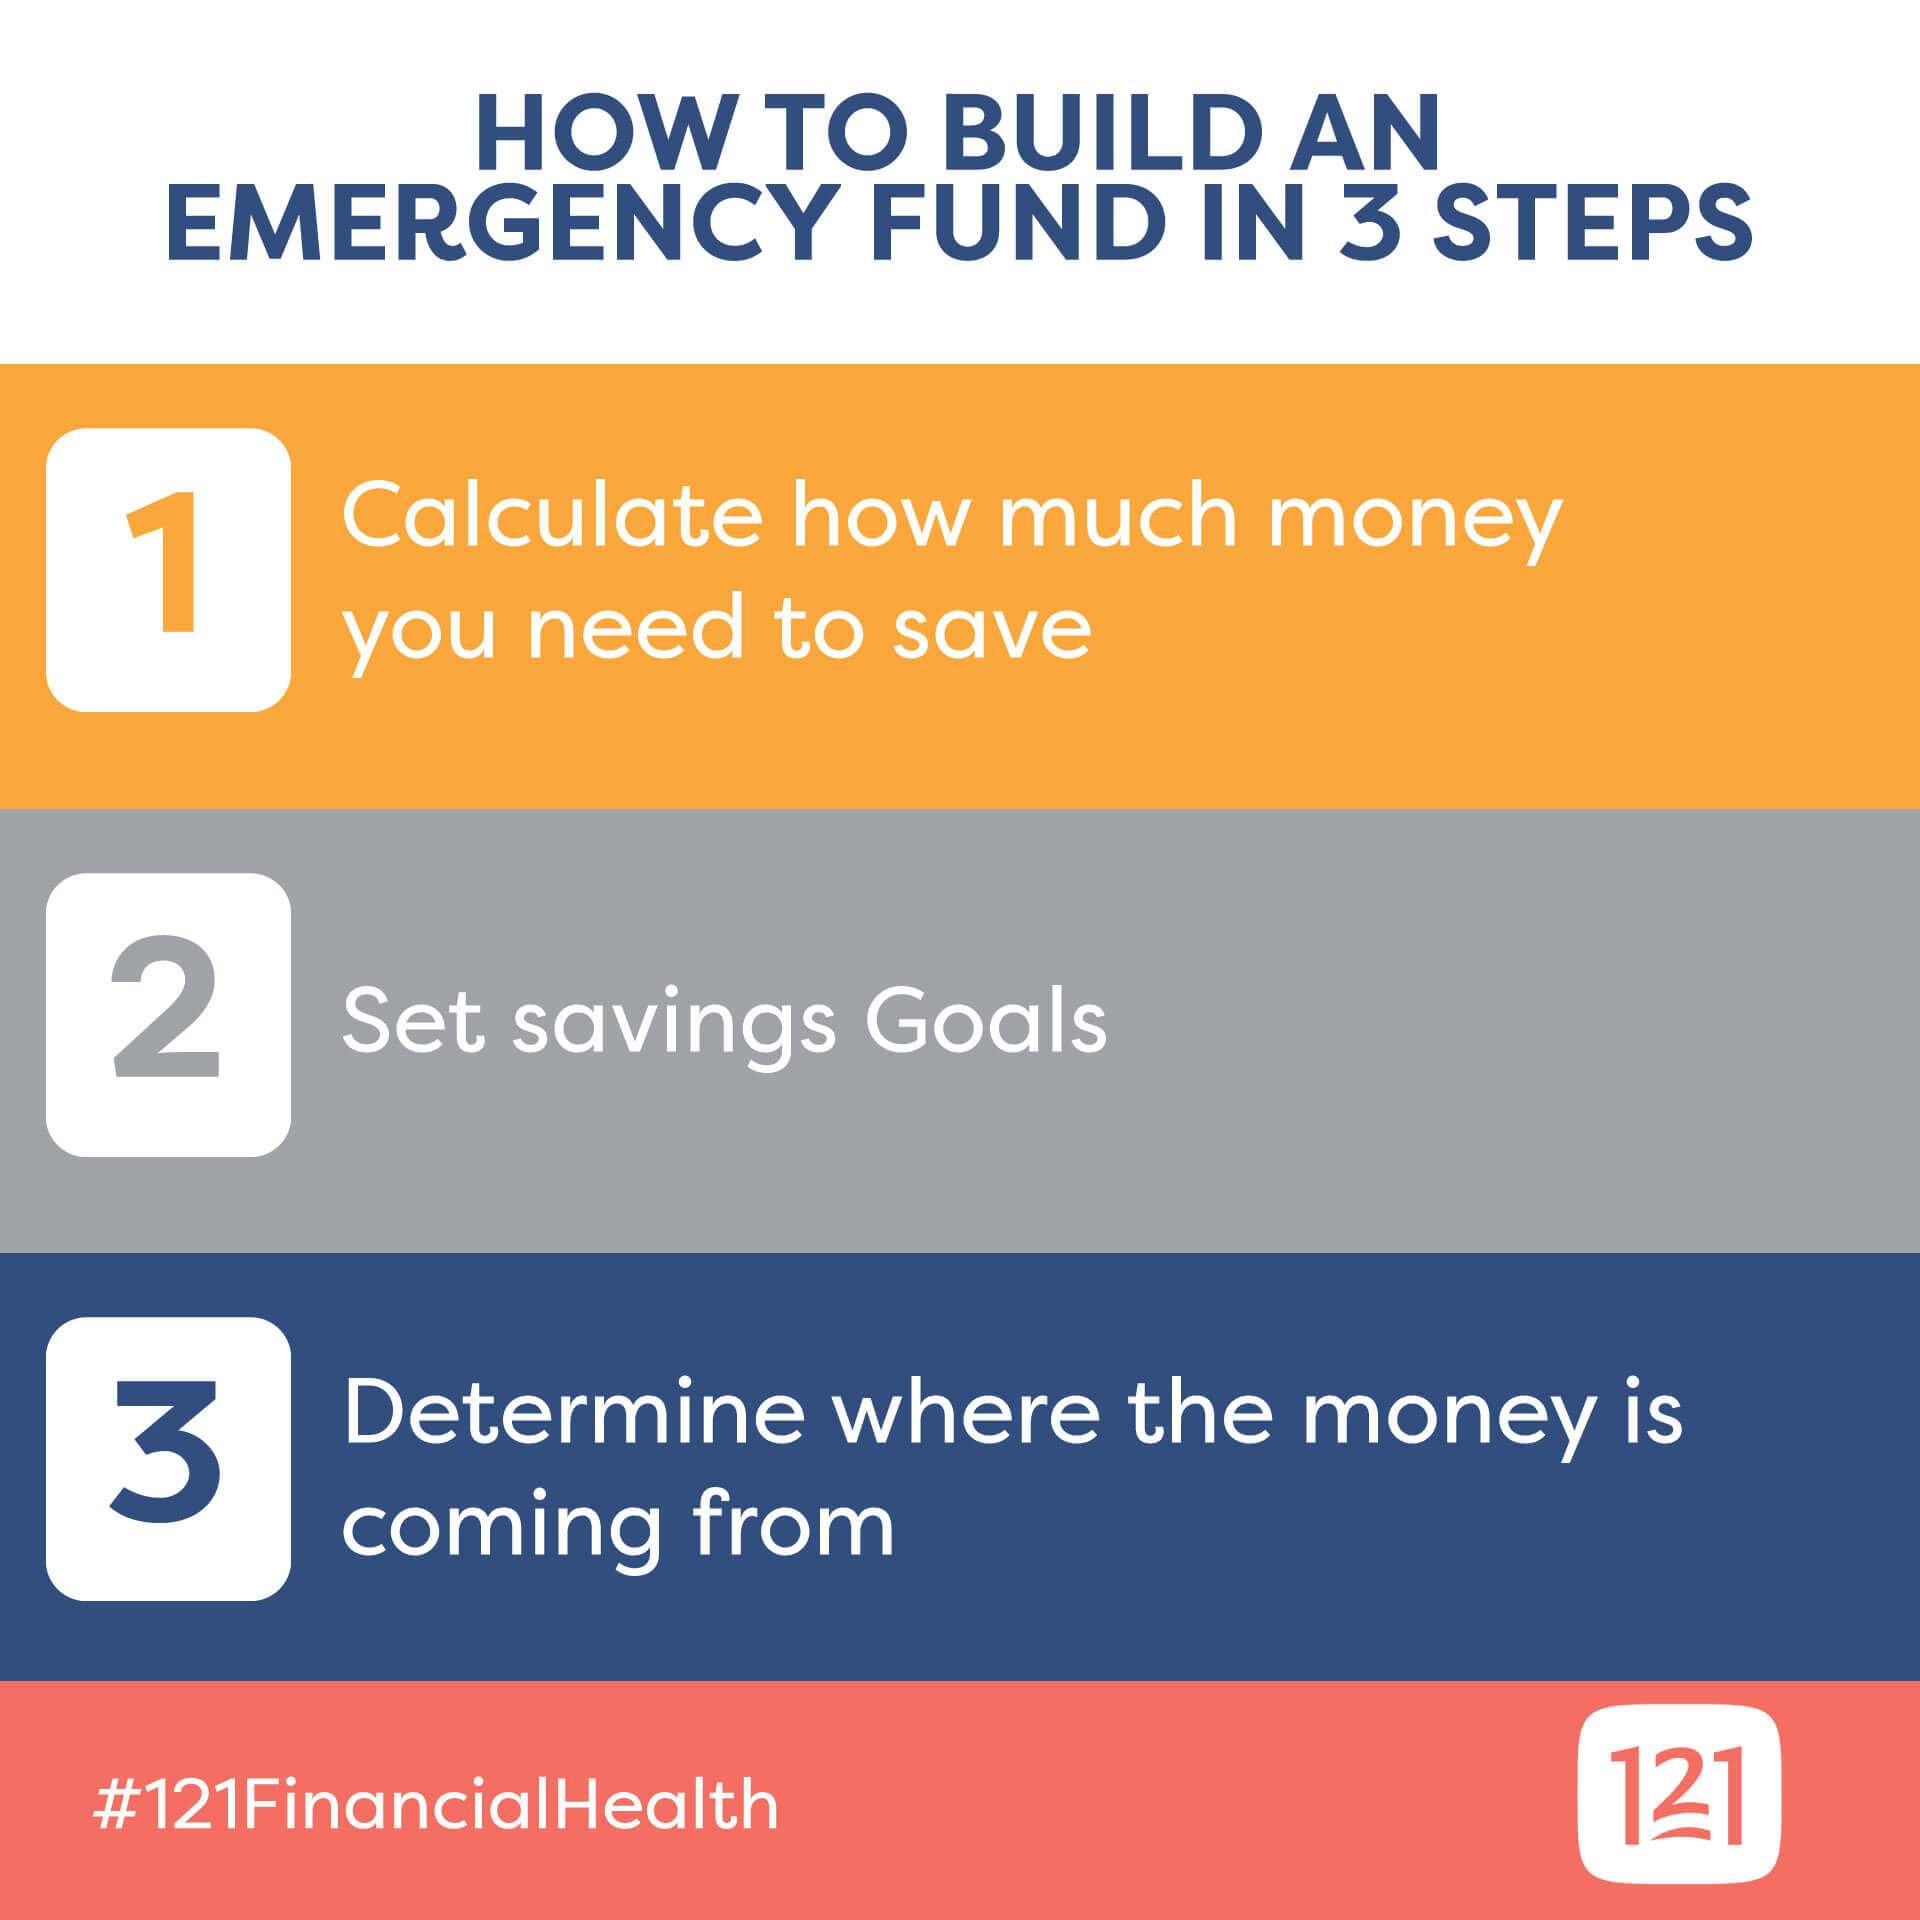 build an emergency fund in 3 steps